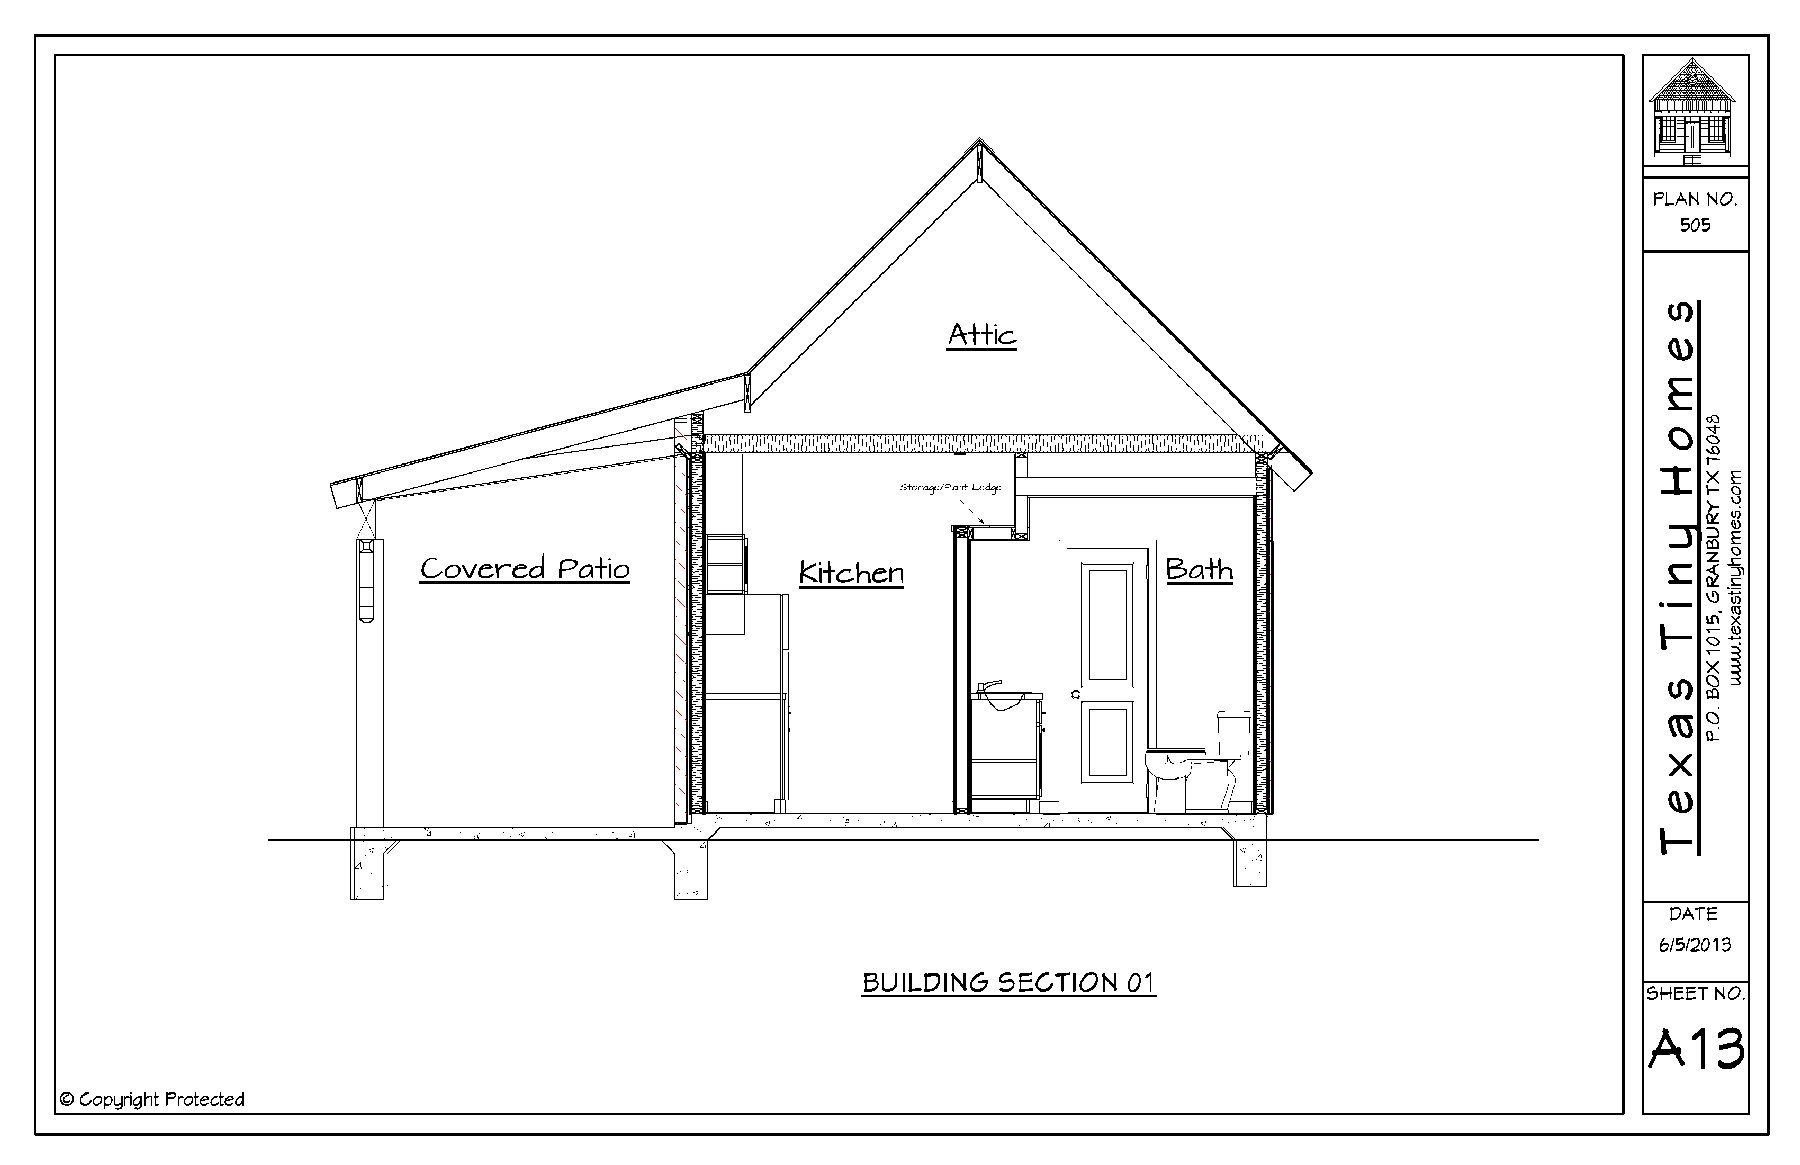 Texas tiny homes plan 505 for Home design plans